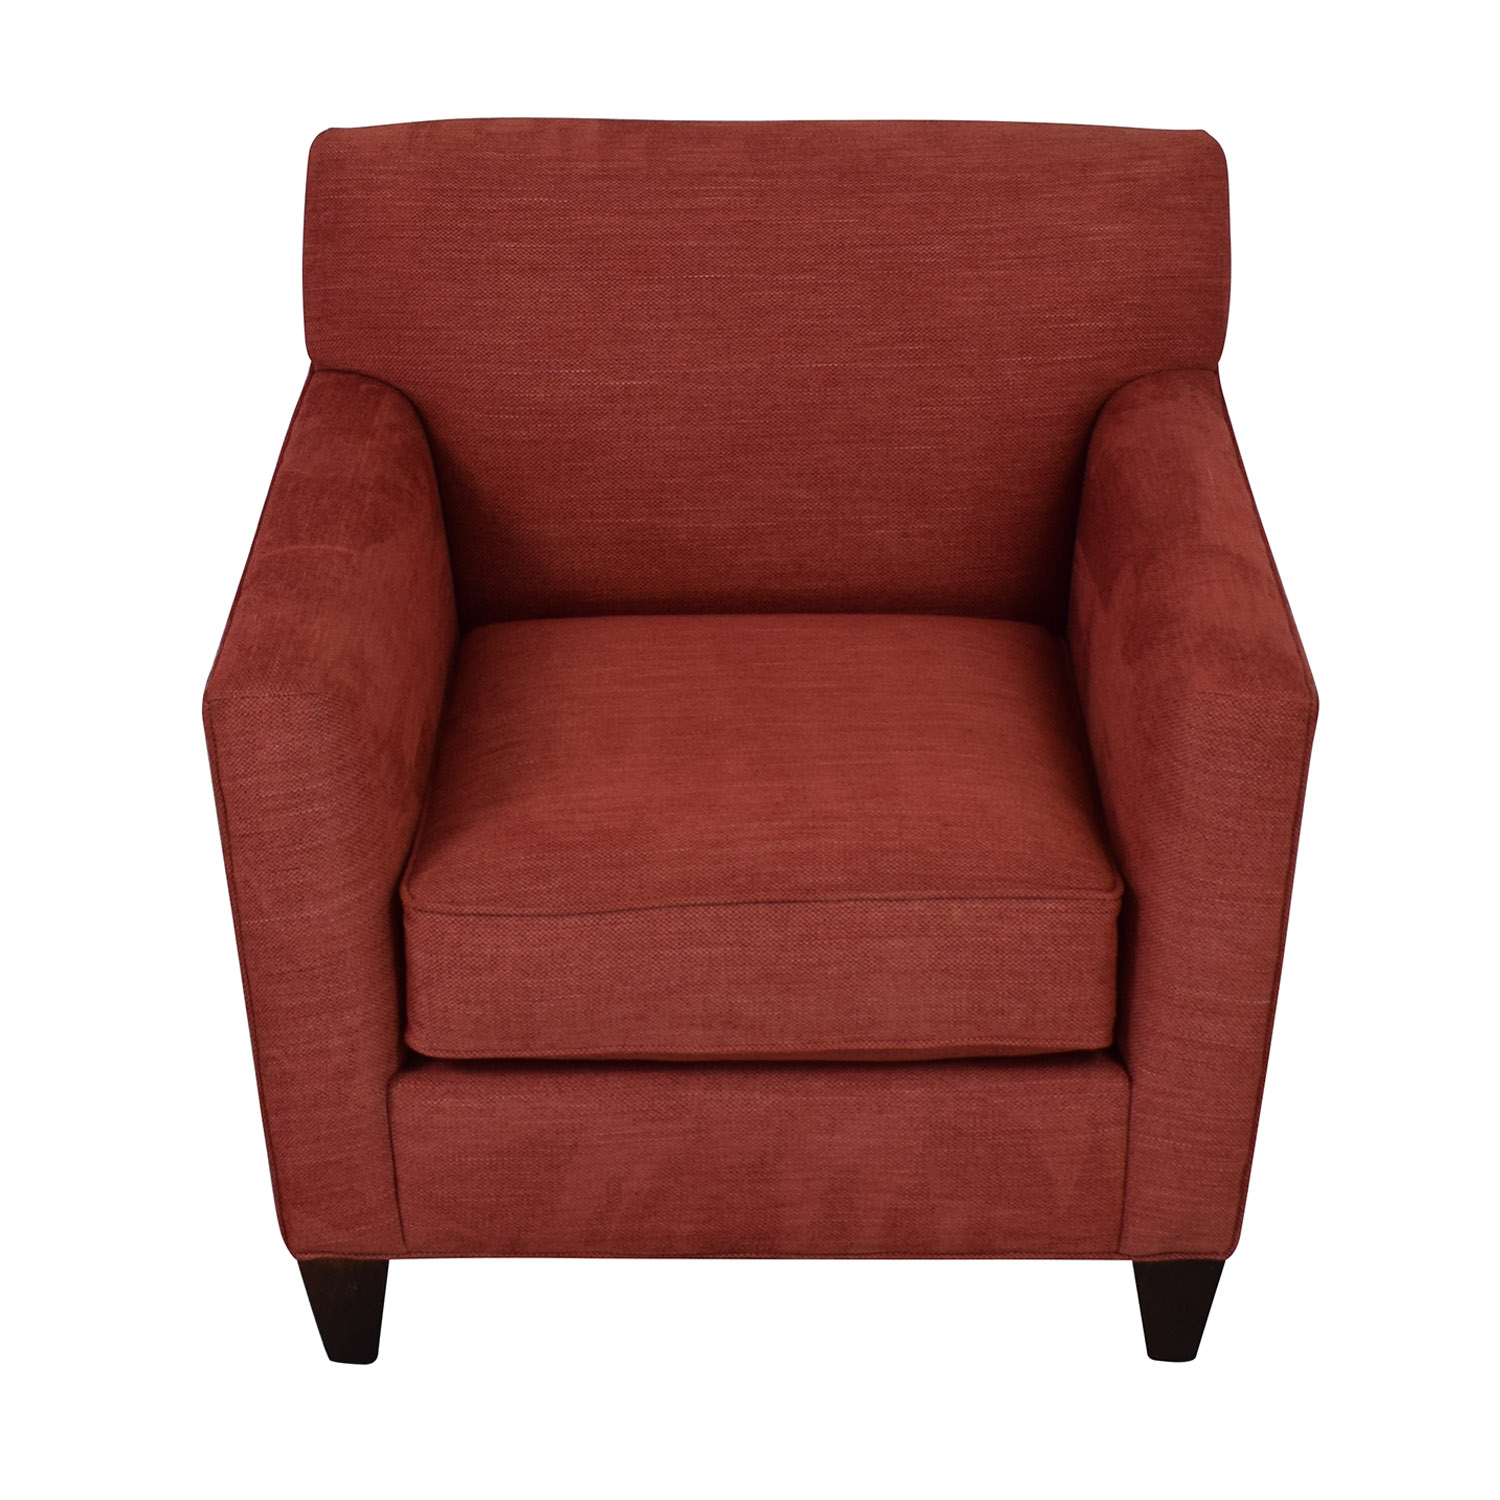 Crate & Barrel Crate & Barrel Hennessy Arm Chair used